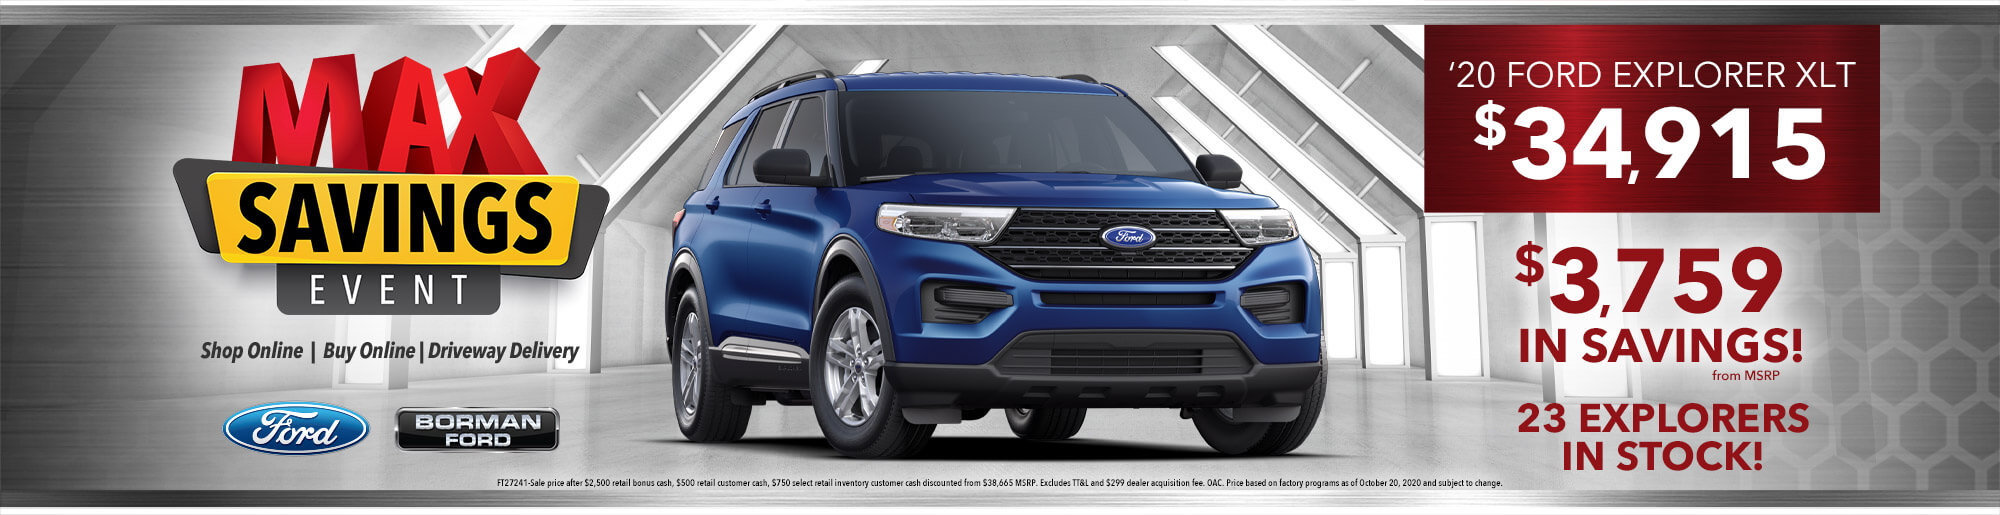 Ford_Explorer_Slider